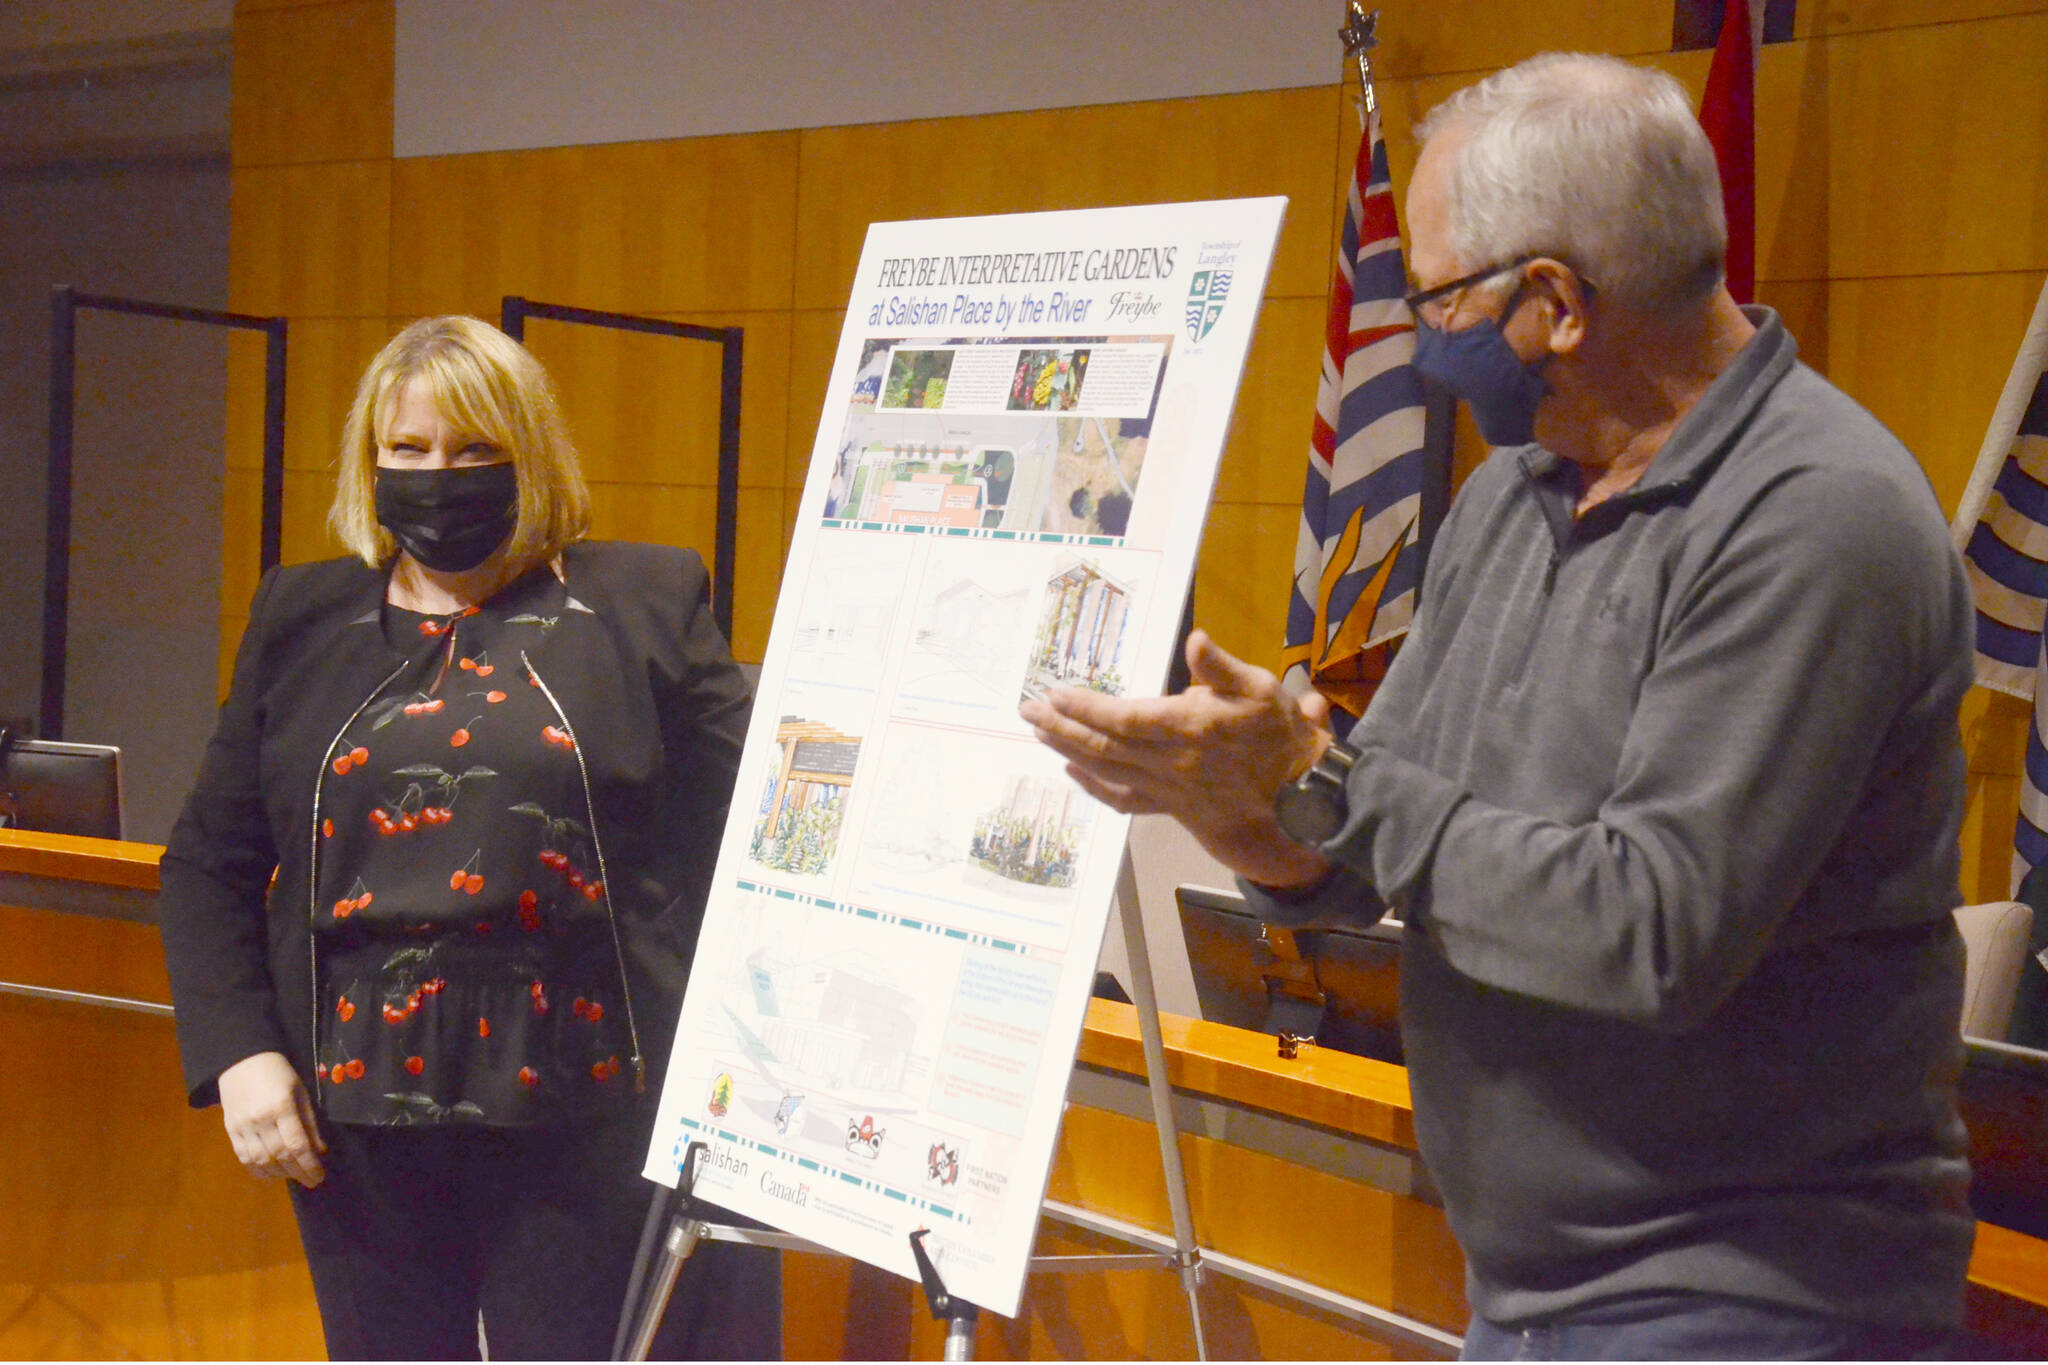 Angela Doro, president of Freybe, and Township Mayor Jack Froese, announced Freybe's $70,000 donation towards a garden at the new Salishan Place by the River. (Matthew Claxton/Langley Advance Times)